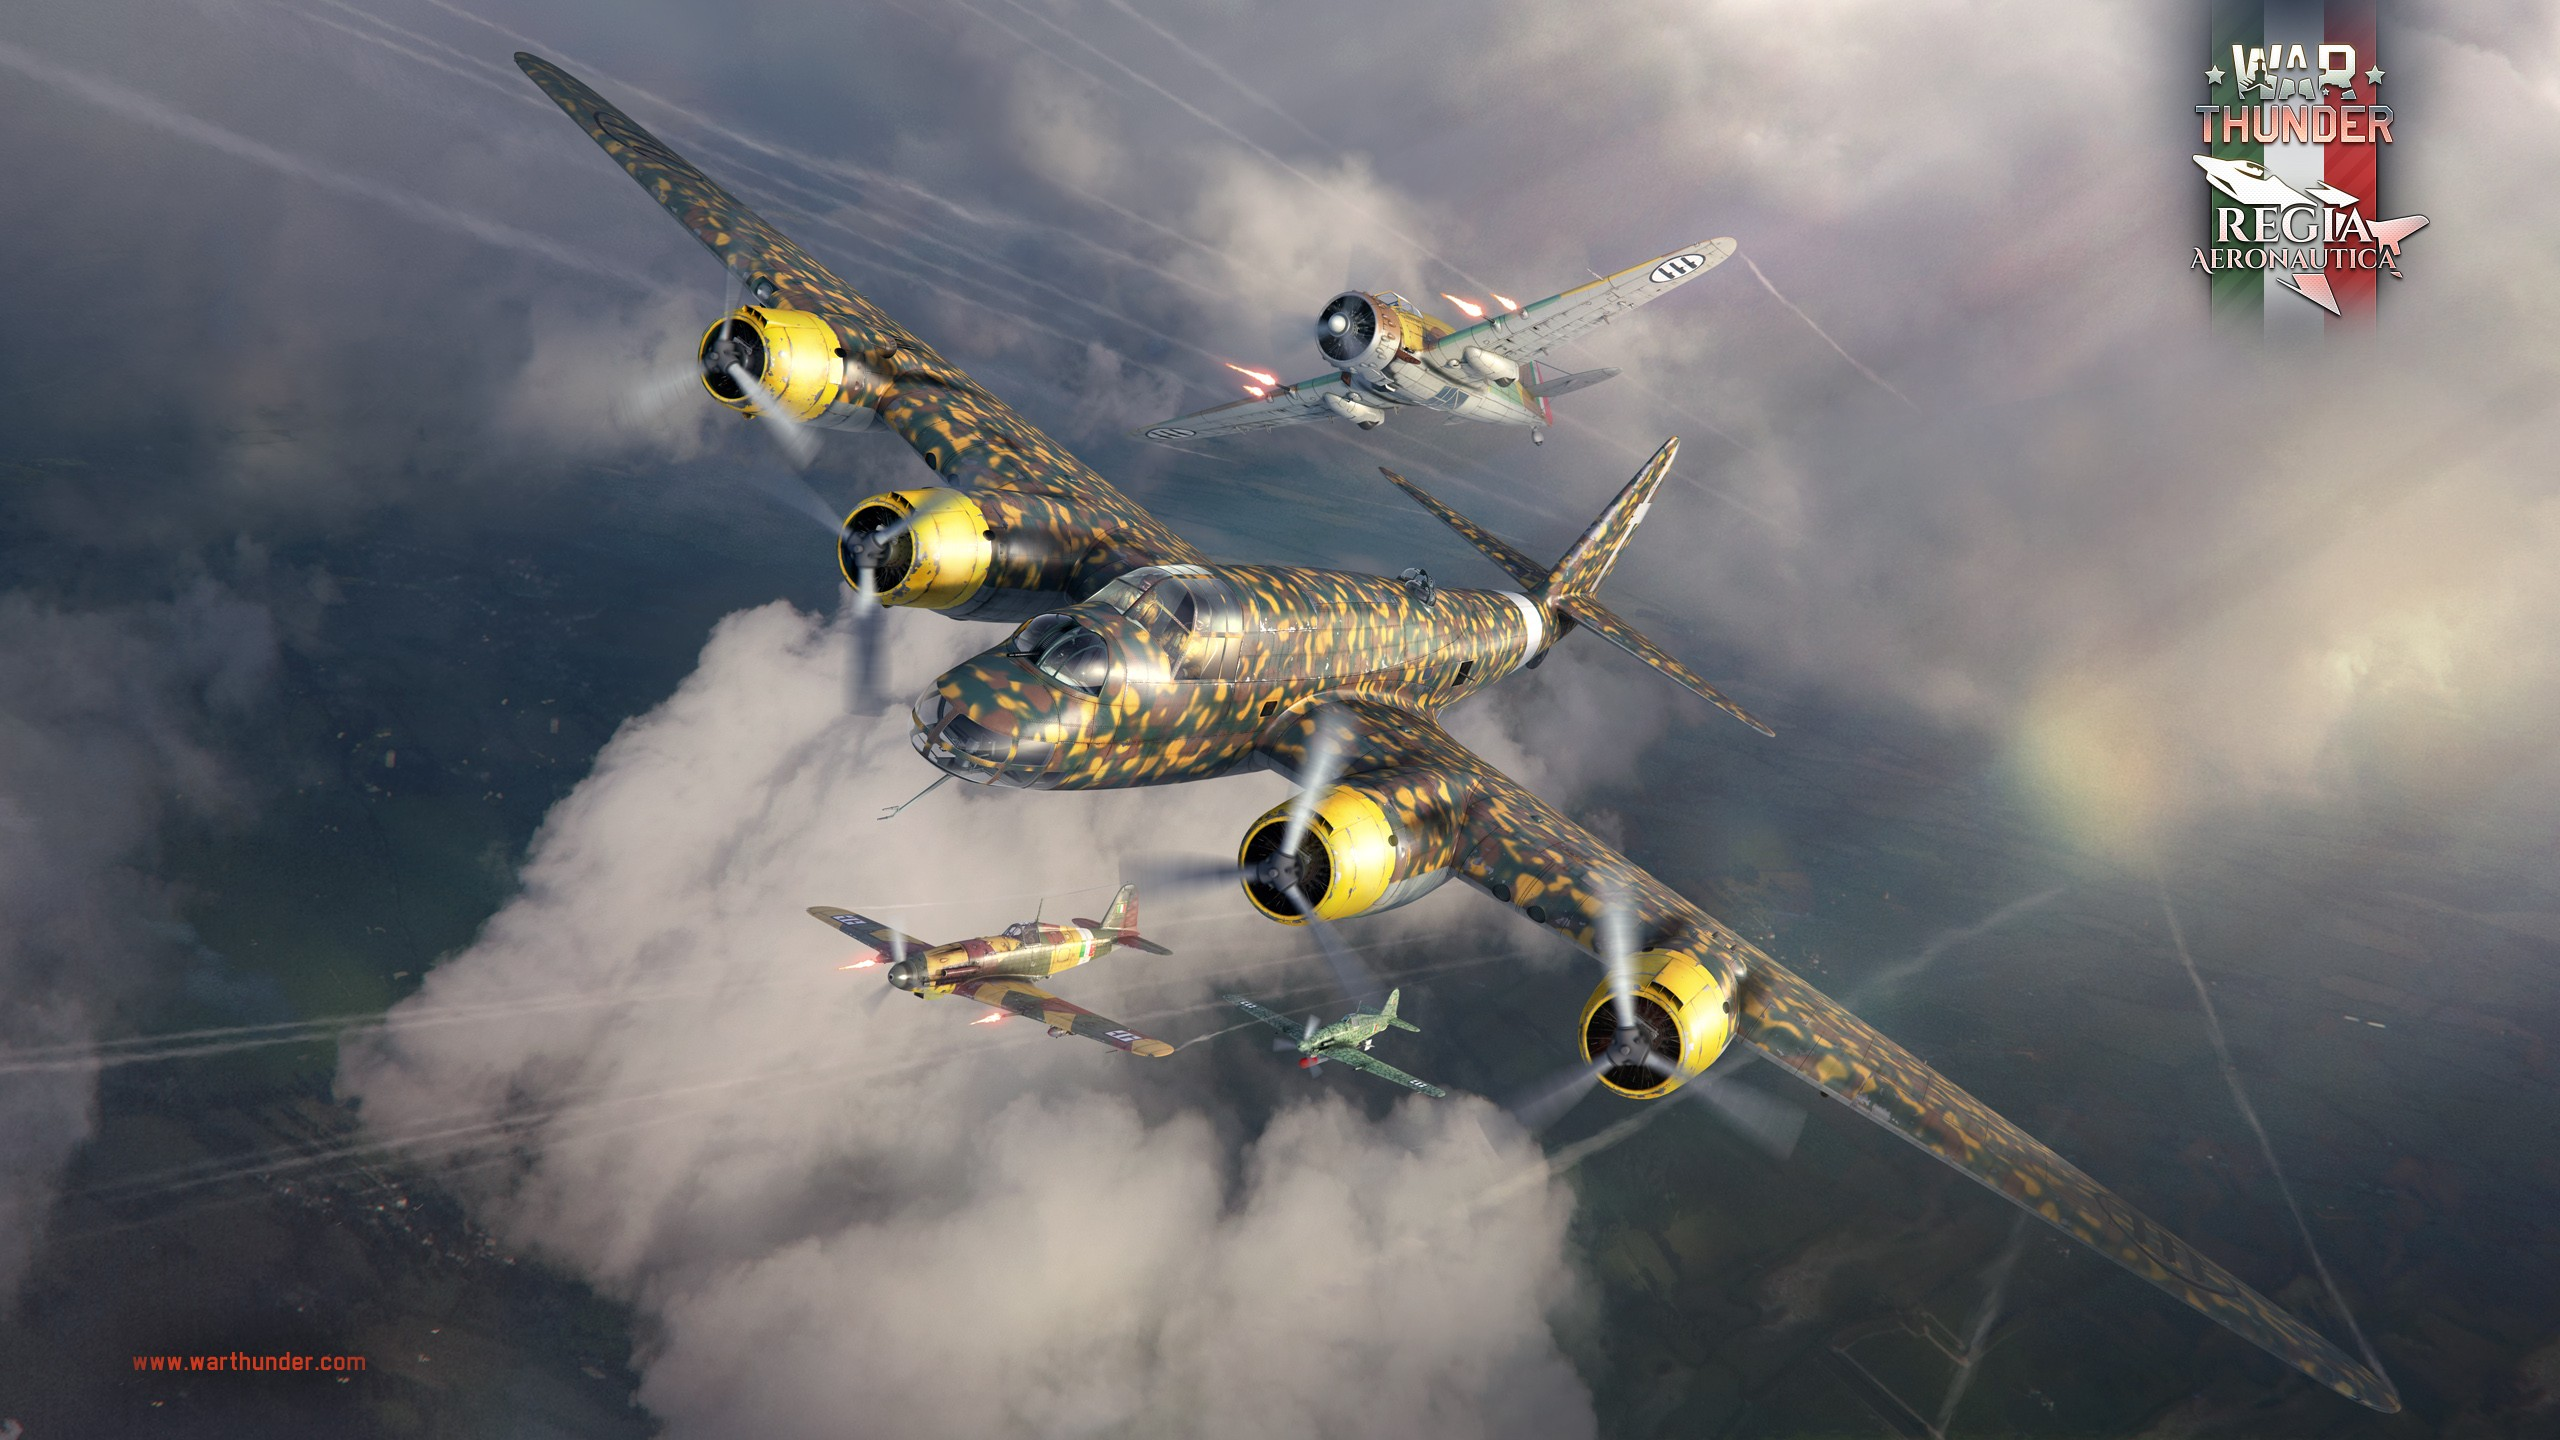 War thunder wallpaper download free cool high - Best war wallpapers hd ...